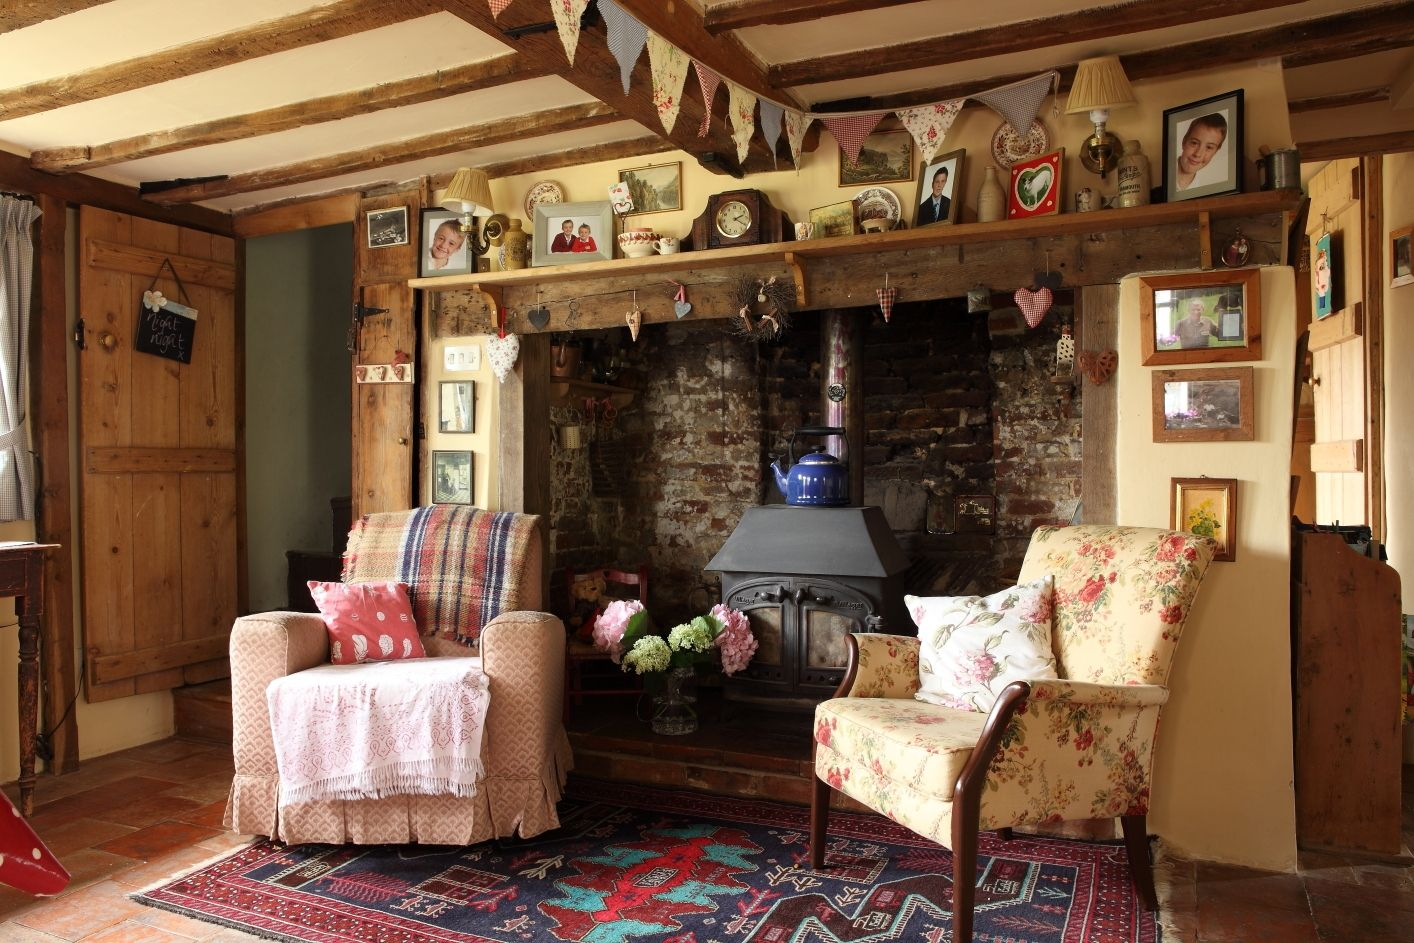 Cozy English And World Styled Sitting Room With: Charlotte Coward-WIlliams Photography Magazine